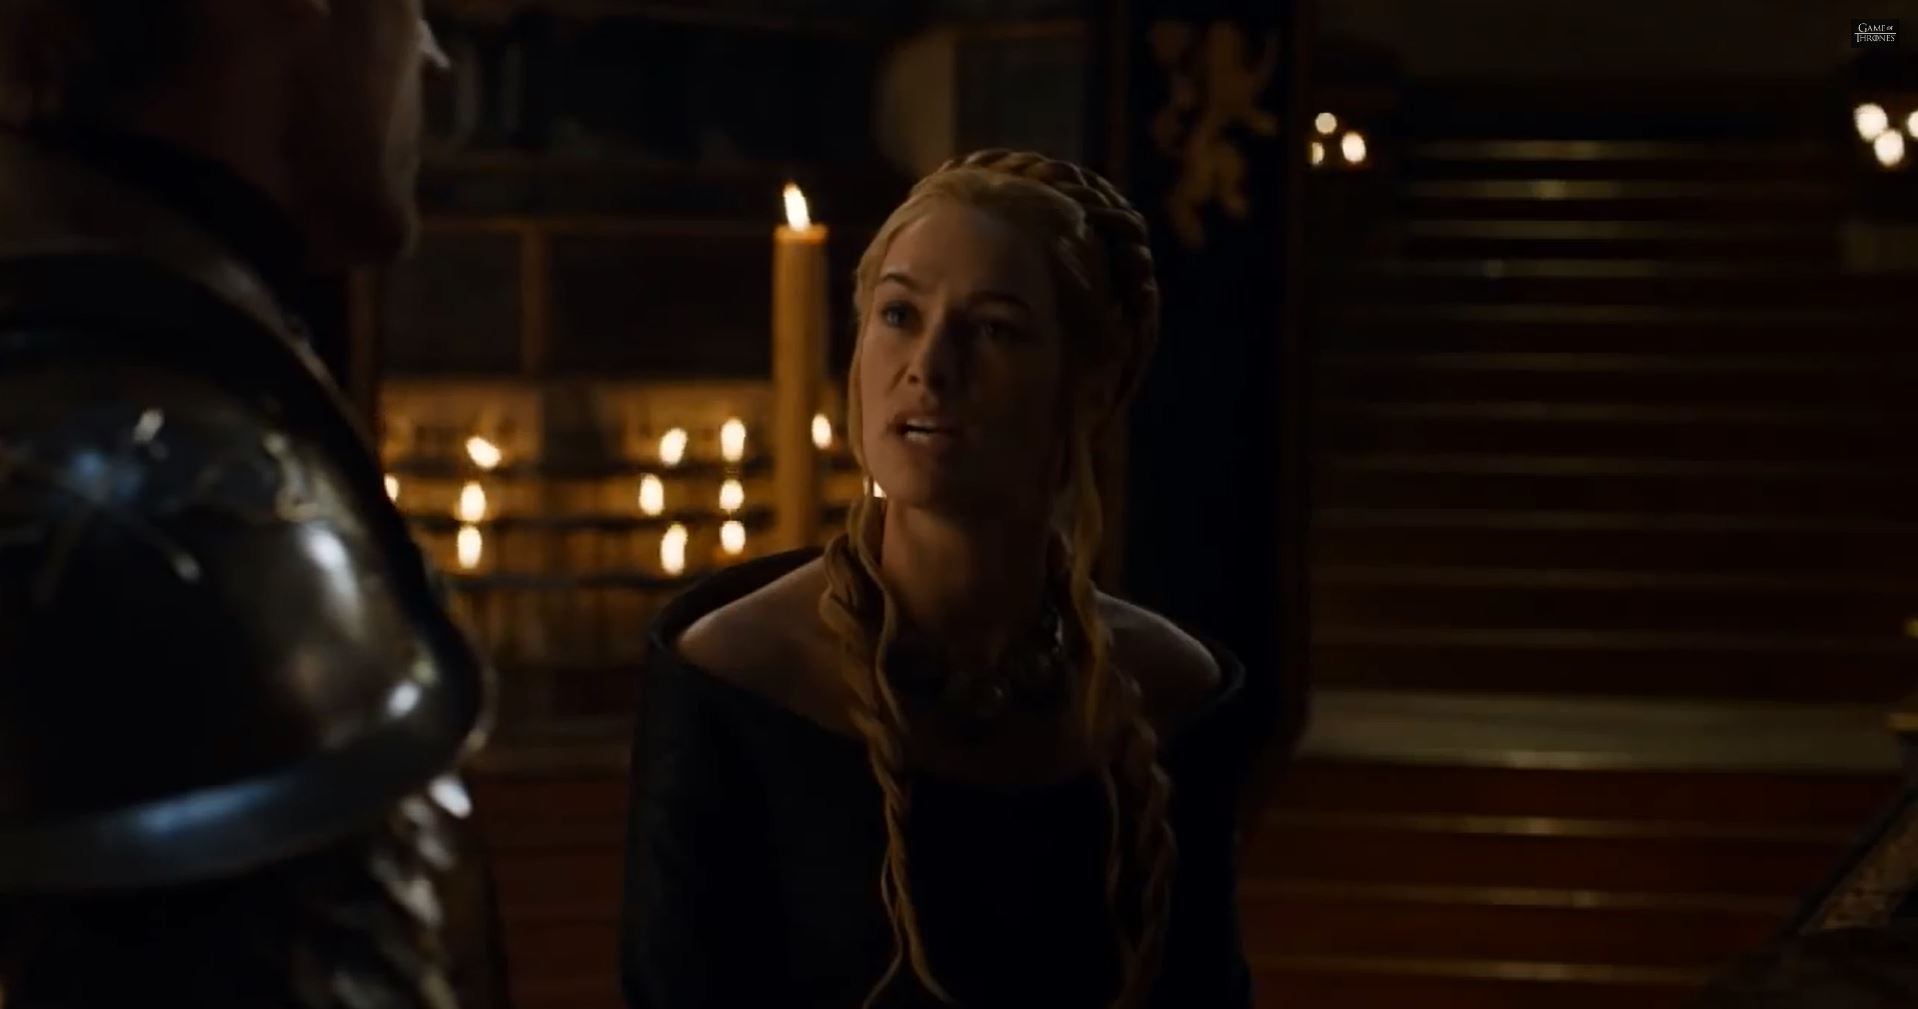 Game Of Thrones Season 5 Preview. Lena Headey as Queen Regent Cersei Lannister